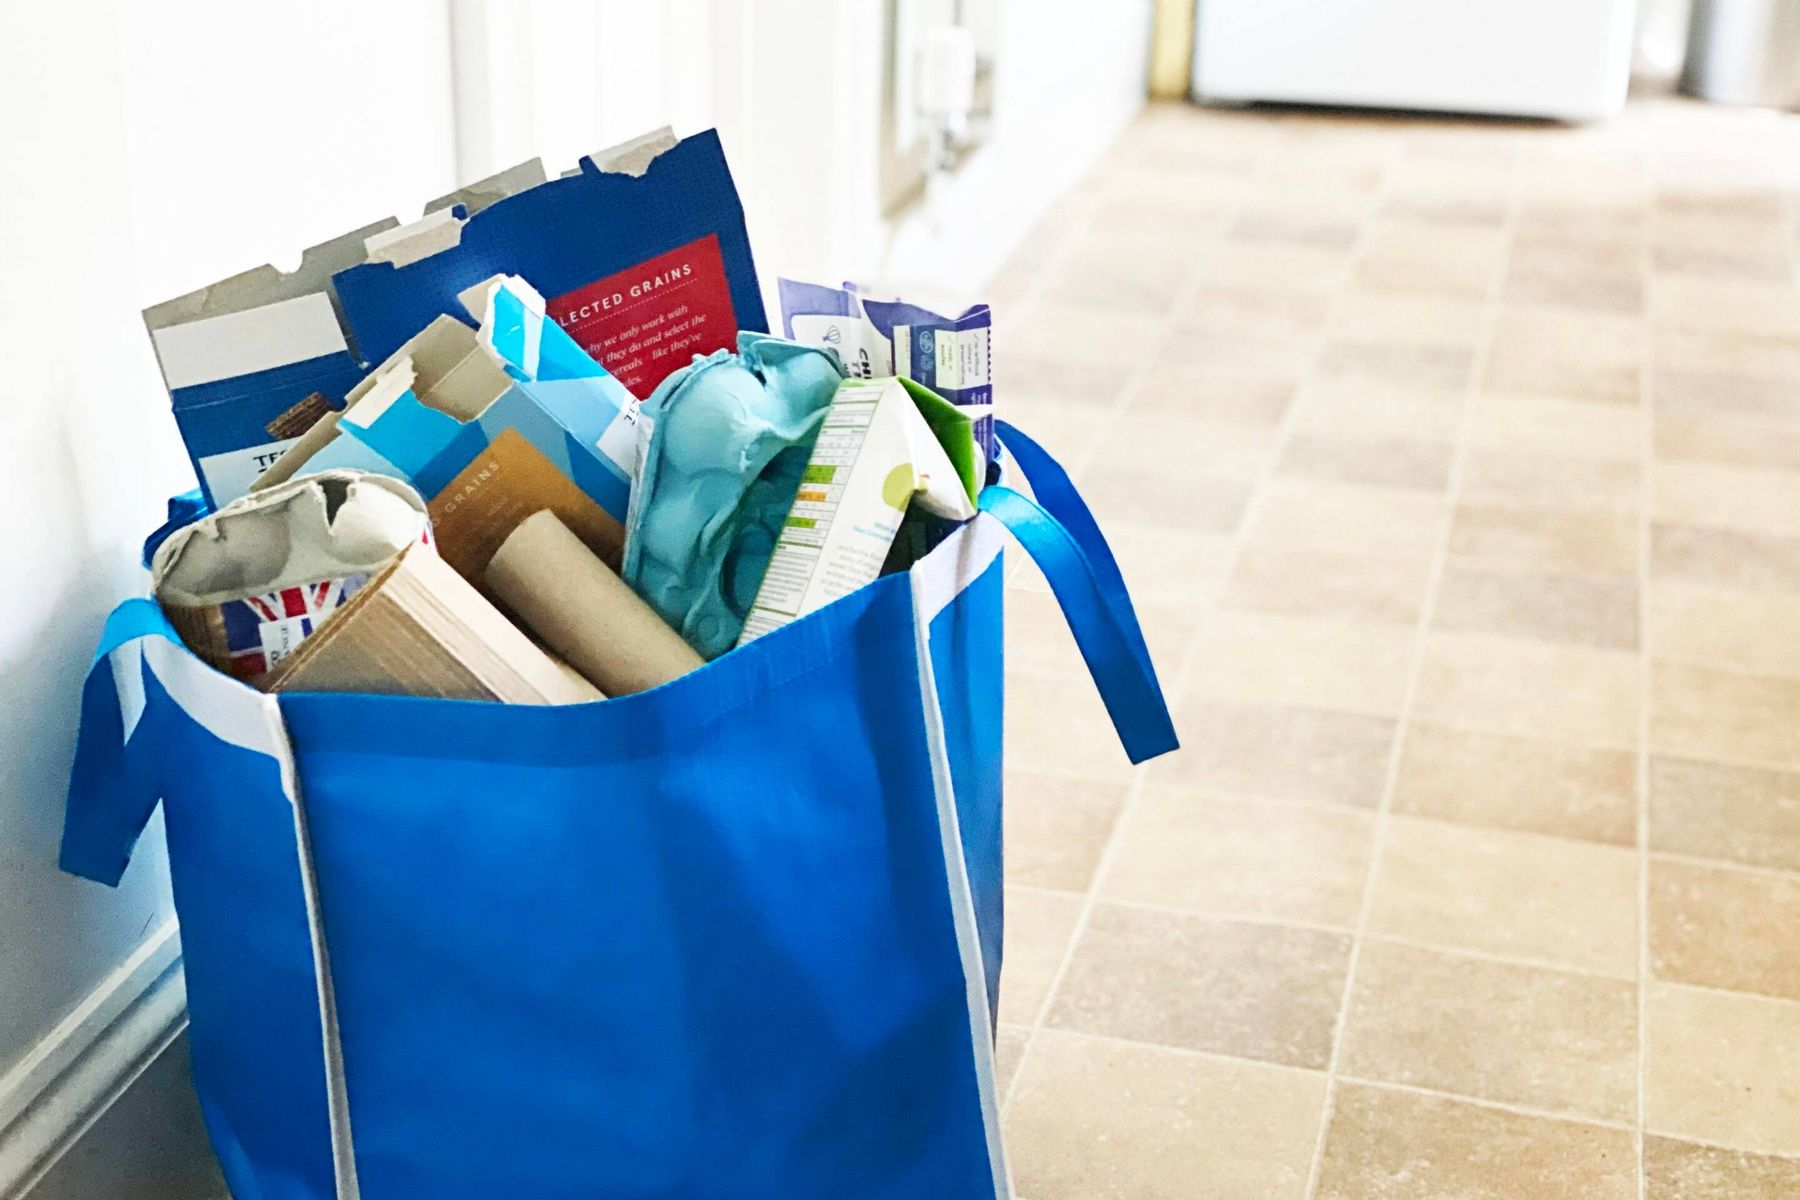 A bag containing a variety of cardboard items, including cereal boxes and egg cartons